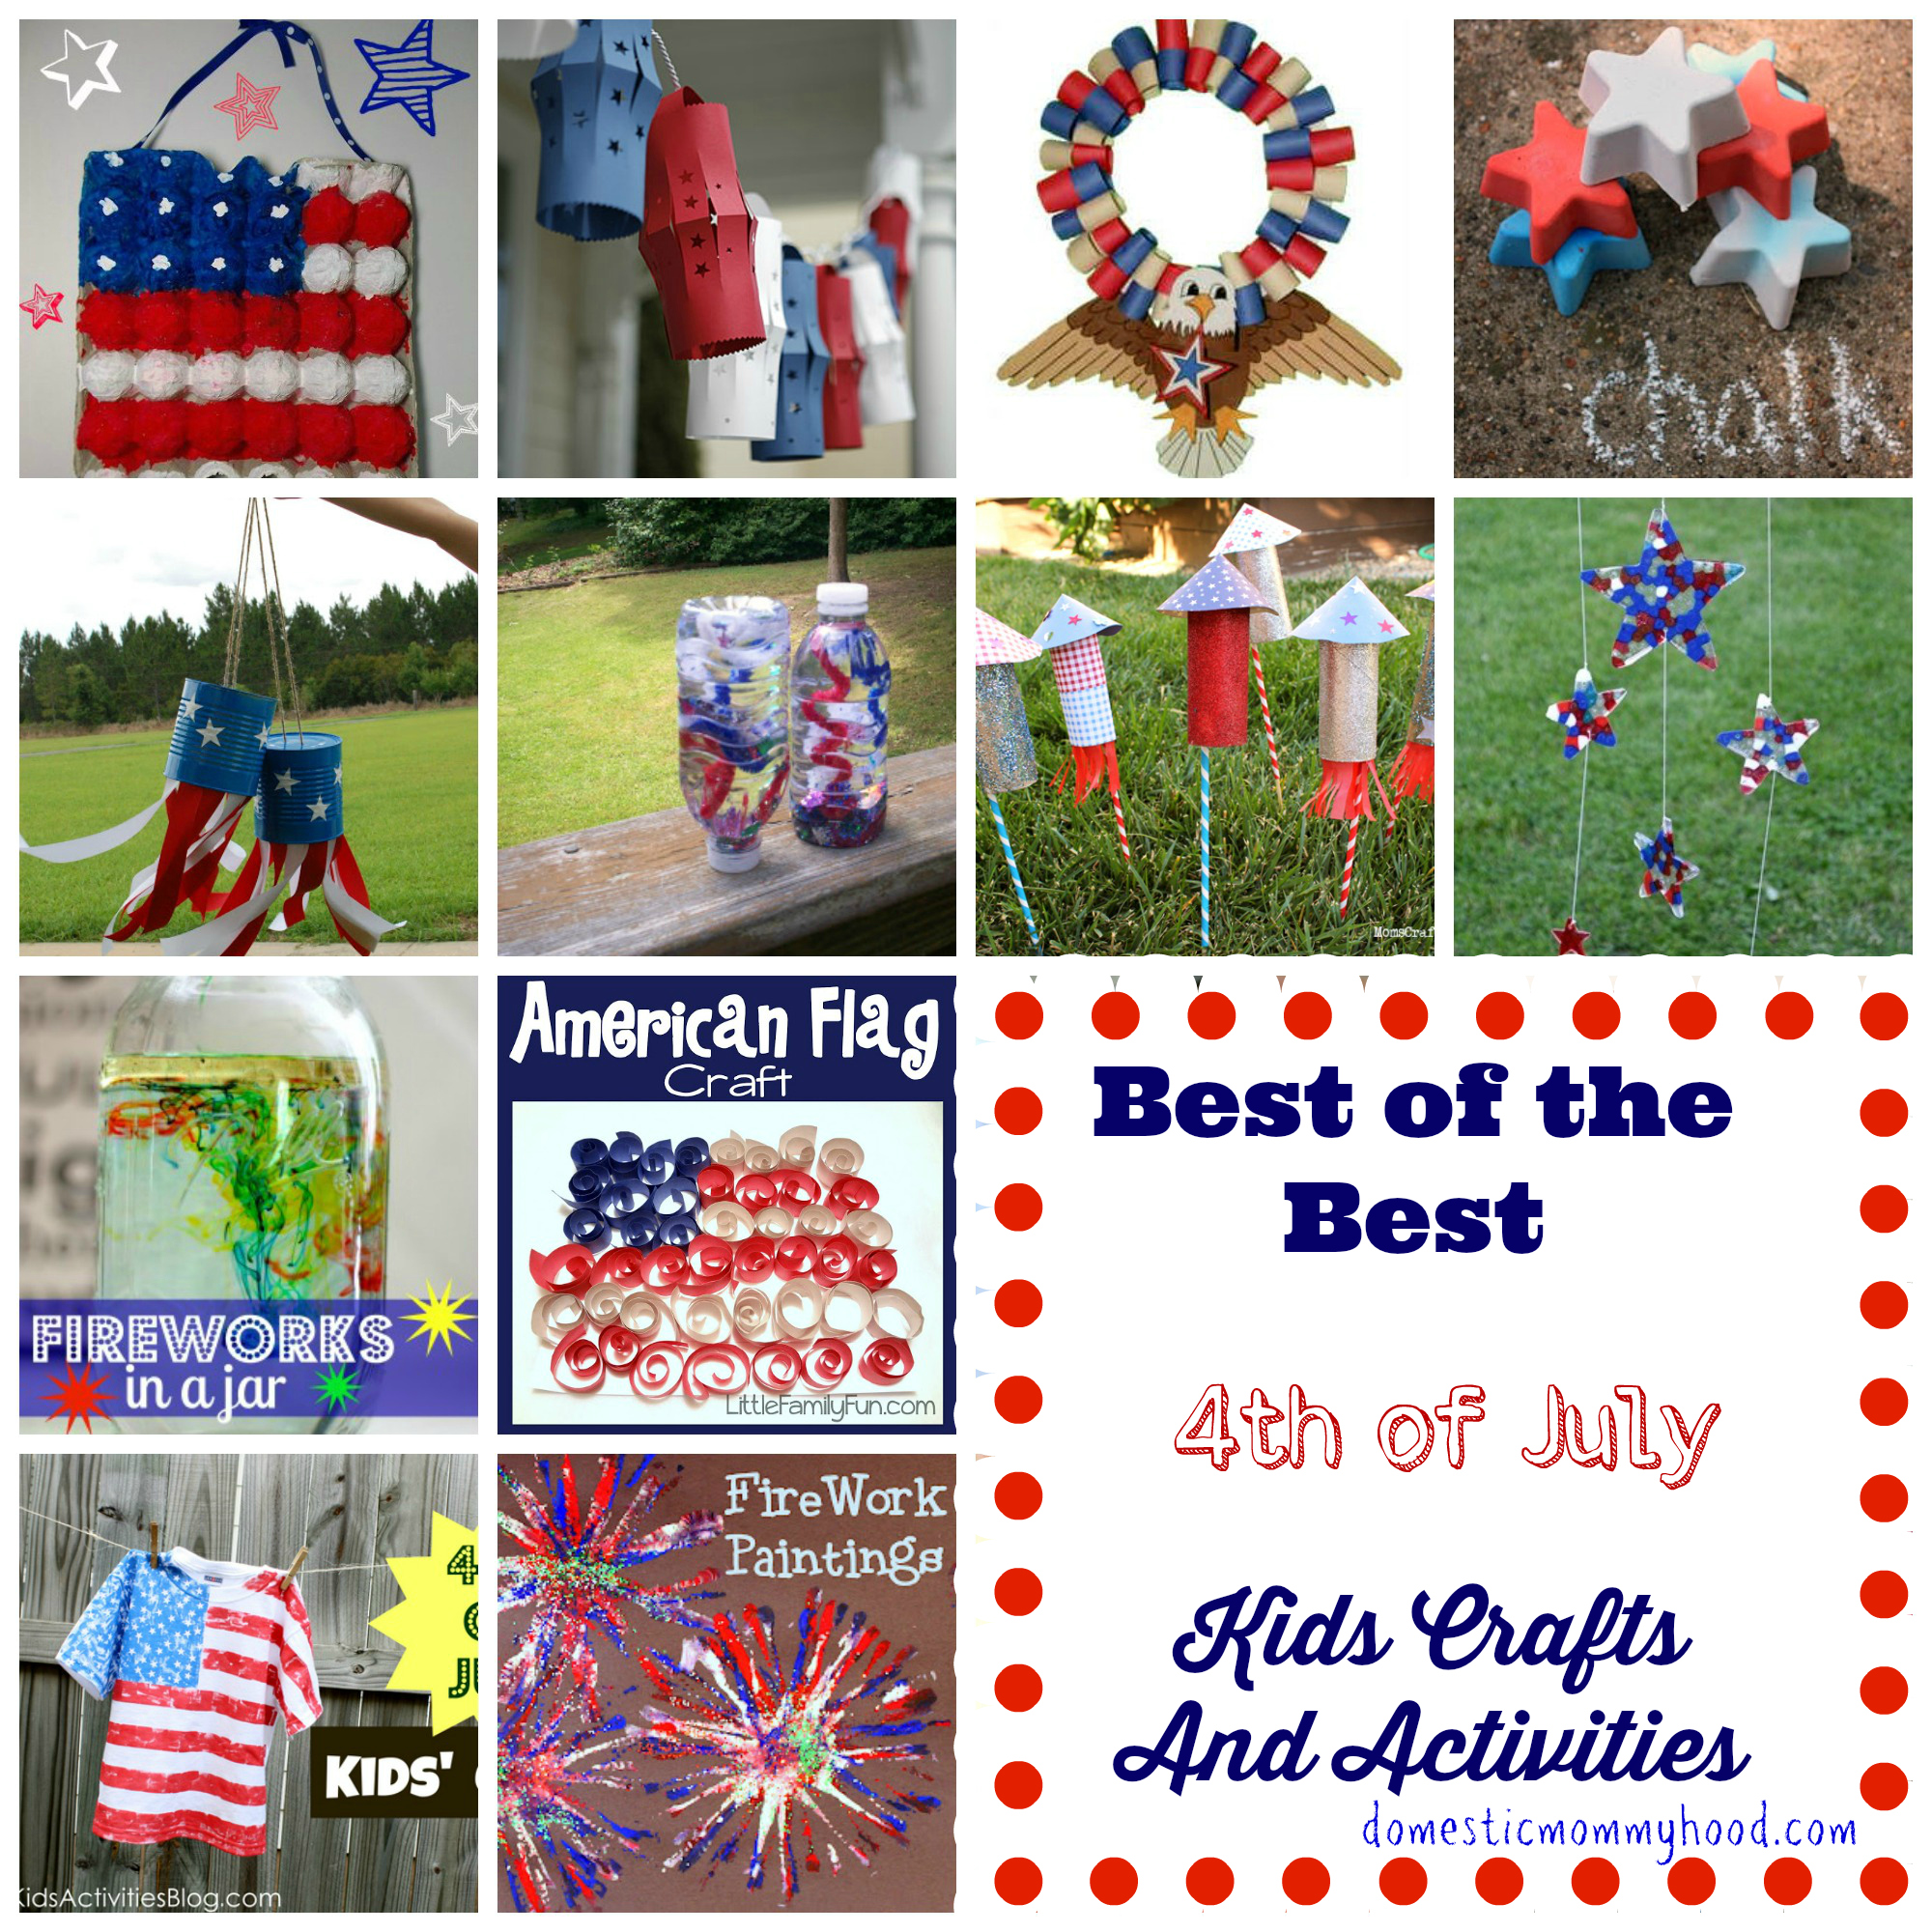 May The Fourth Be With You School Activities: 20 4th Of July Kids Crafts And Activities